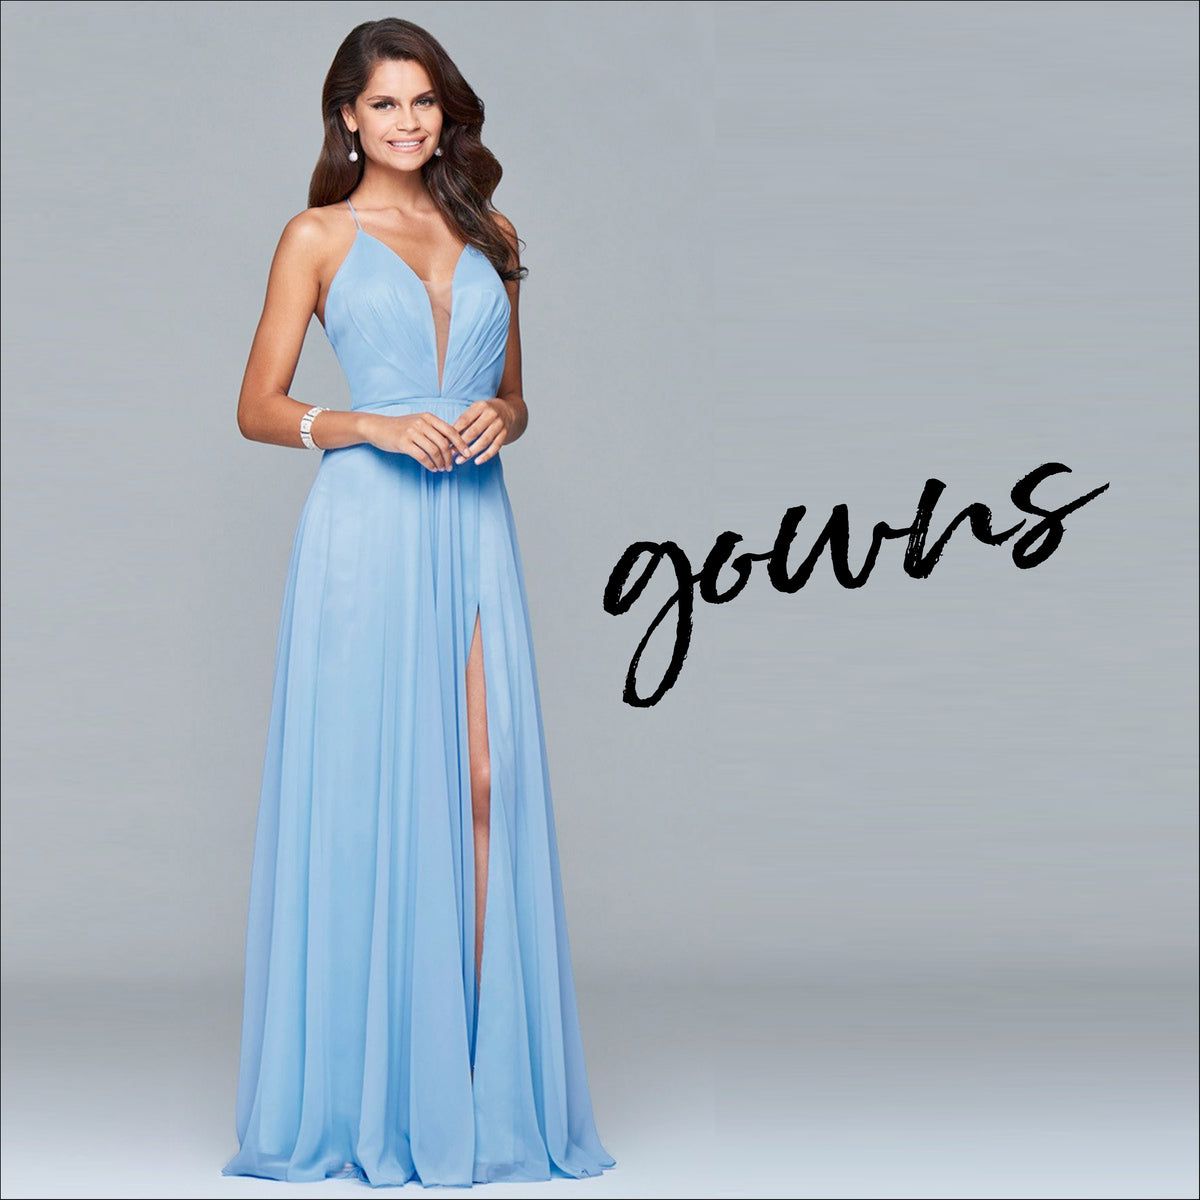 Glamour Boutique - Luxe Eventwear, NZ Ball Dresses, Blacktie ...